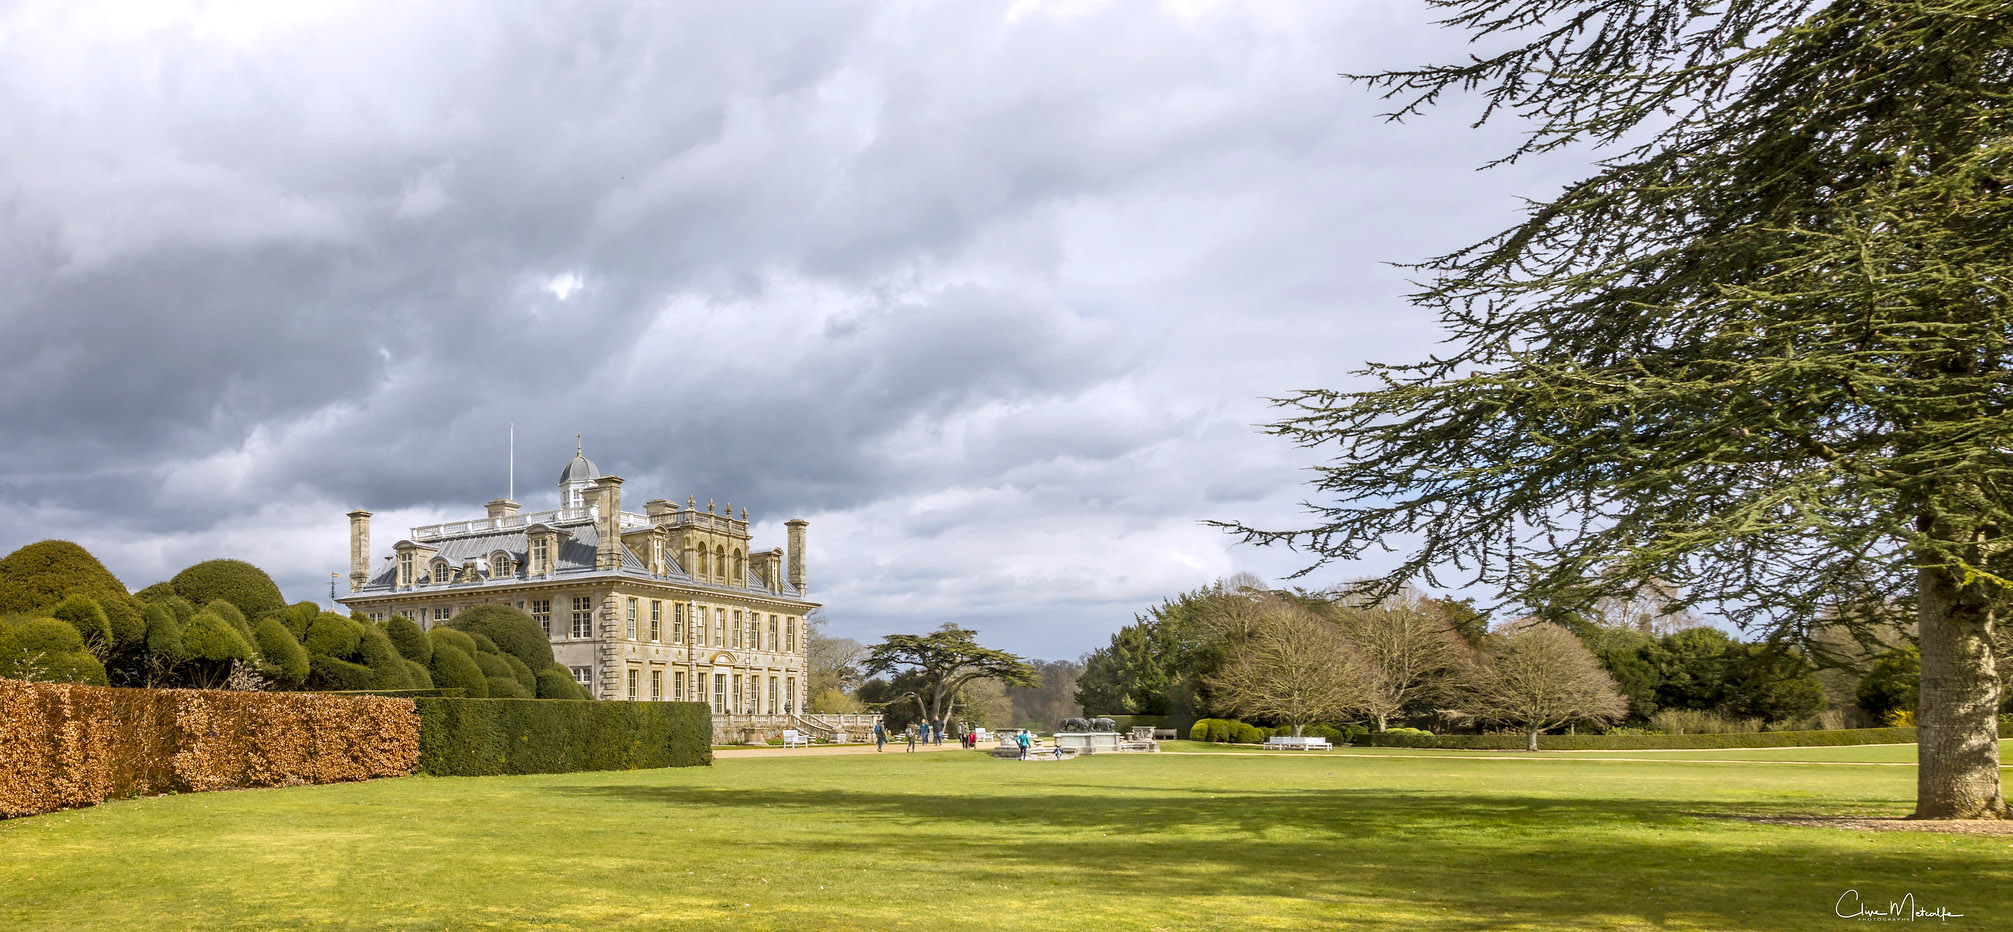 The Kingston Lacey Estate, Pamphill, Dorset by Clive Metcalfe.jpg